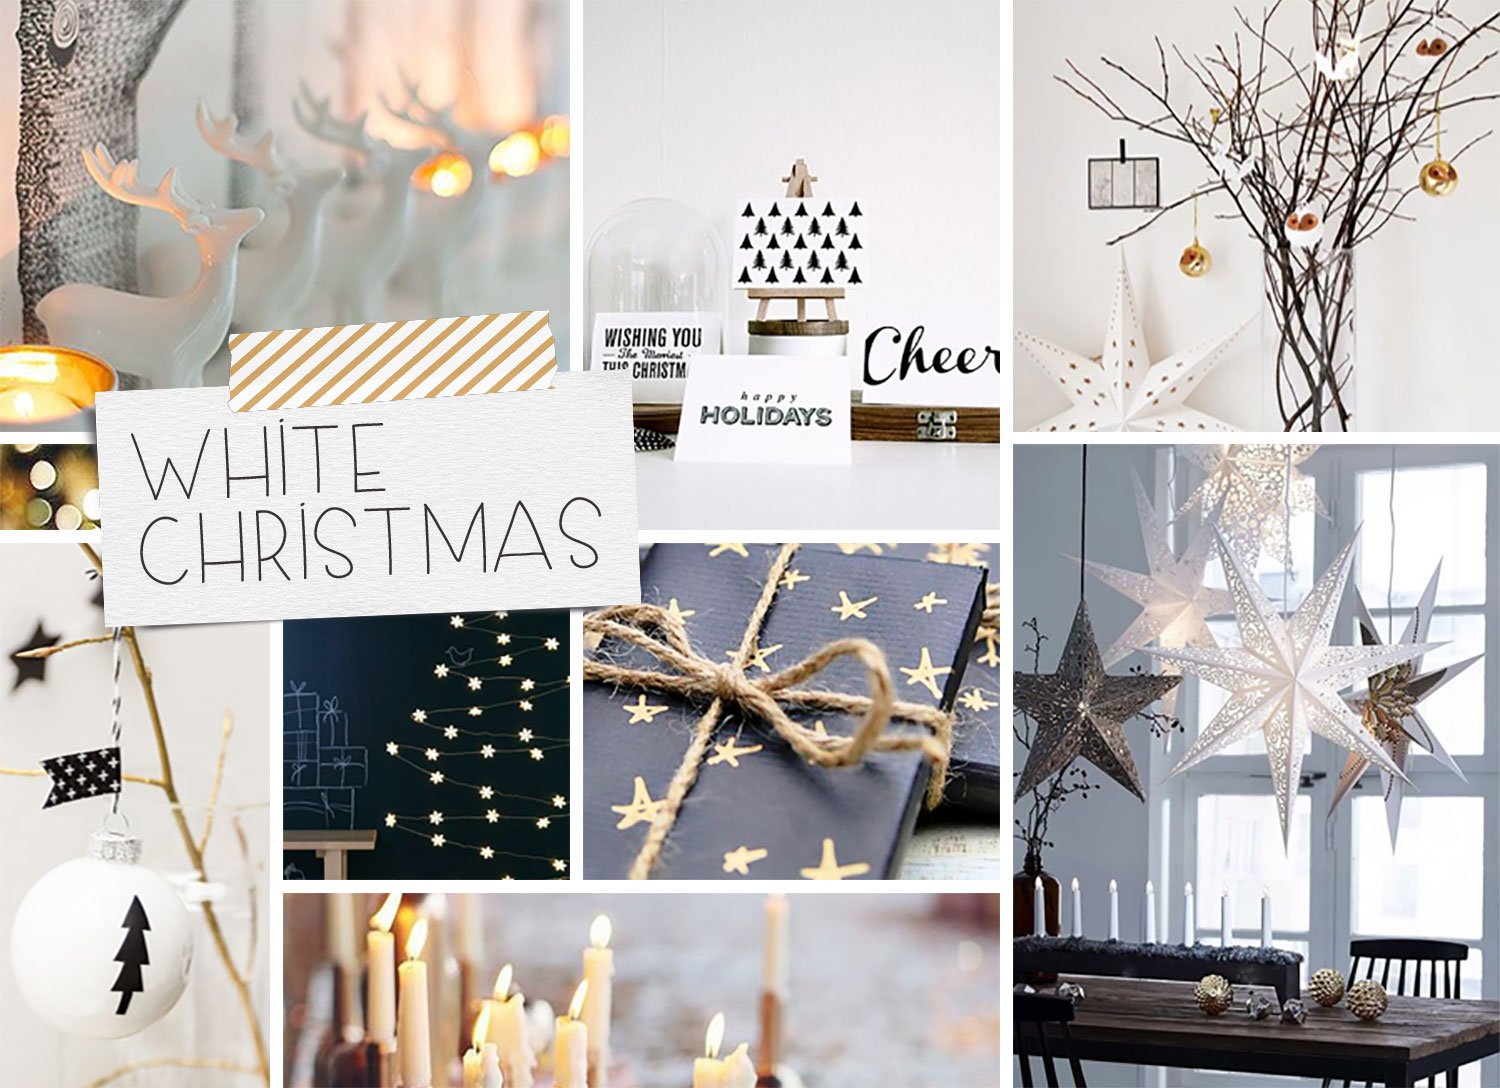 white-christmas-fabric-collection-by-zen-chic.jpg